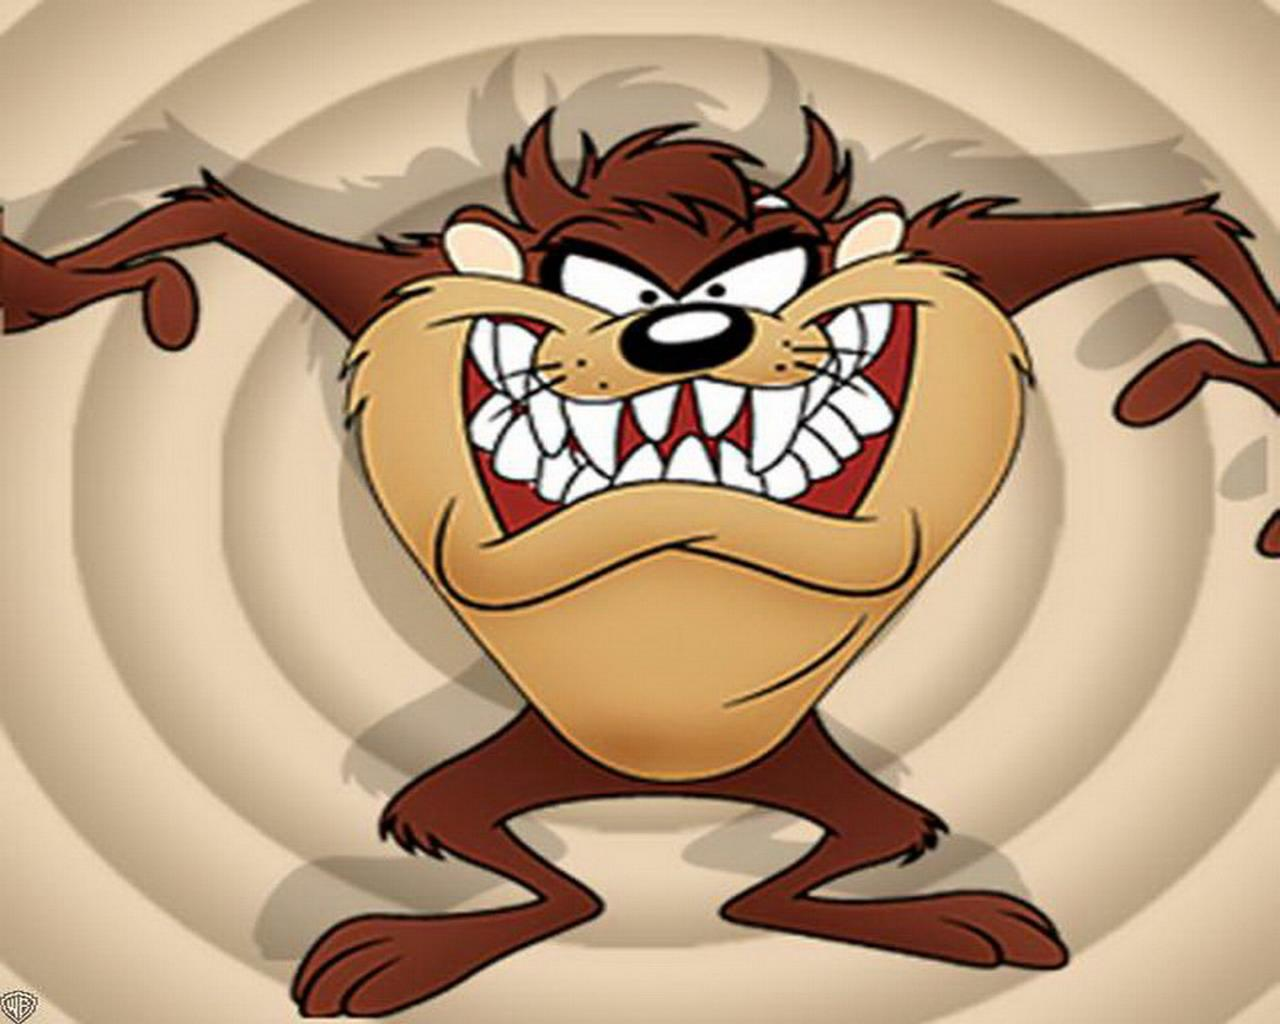 looney tune demonio tasmania: